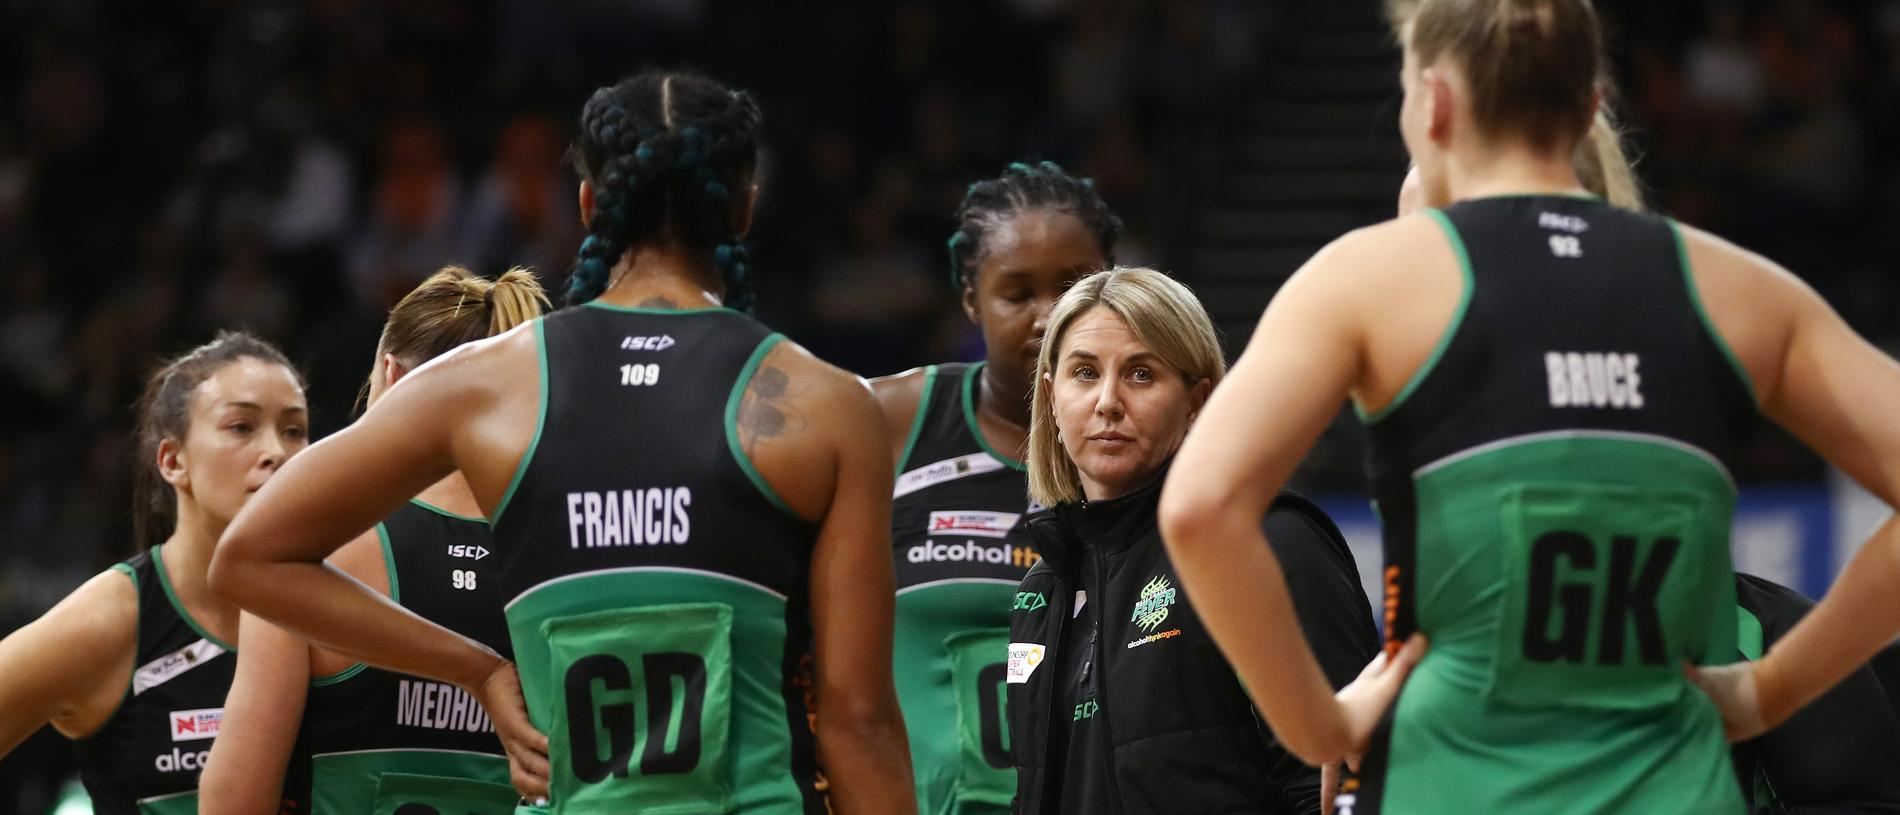 Fever coach, Stacey Marinkovich speak to her players during the Super Netball Major Semi Final match between Giants Netball and the West Coast Fever at QuayCentre in Sydney, Saturday, August 11, 2018. (AAP Image/Brendon Thorne) NO ARCHIVING, EDITORIAL USE ONLY